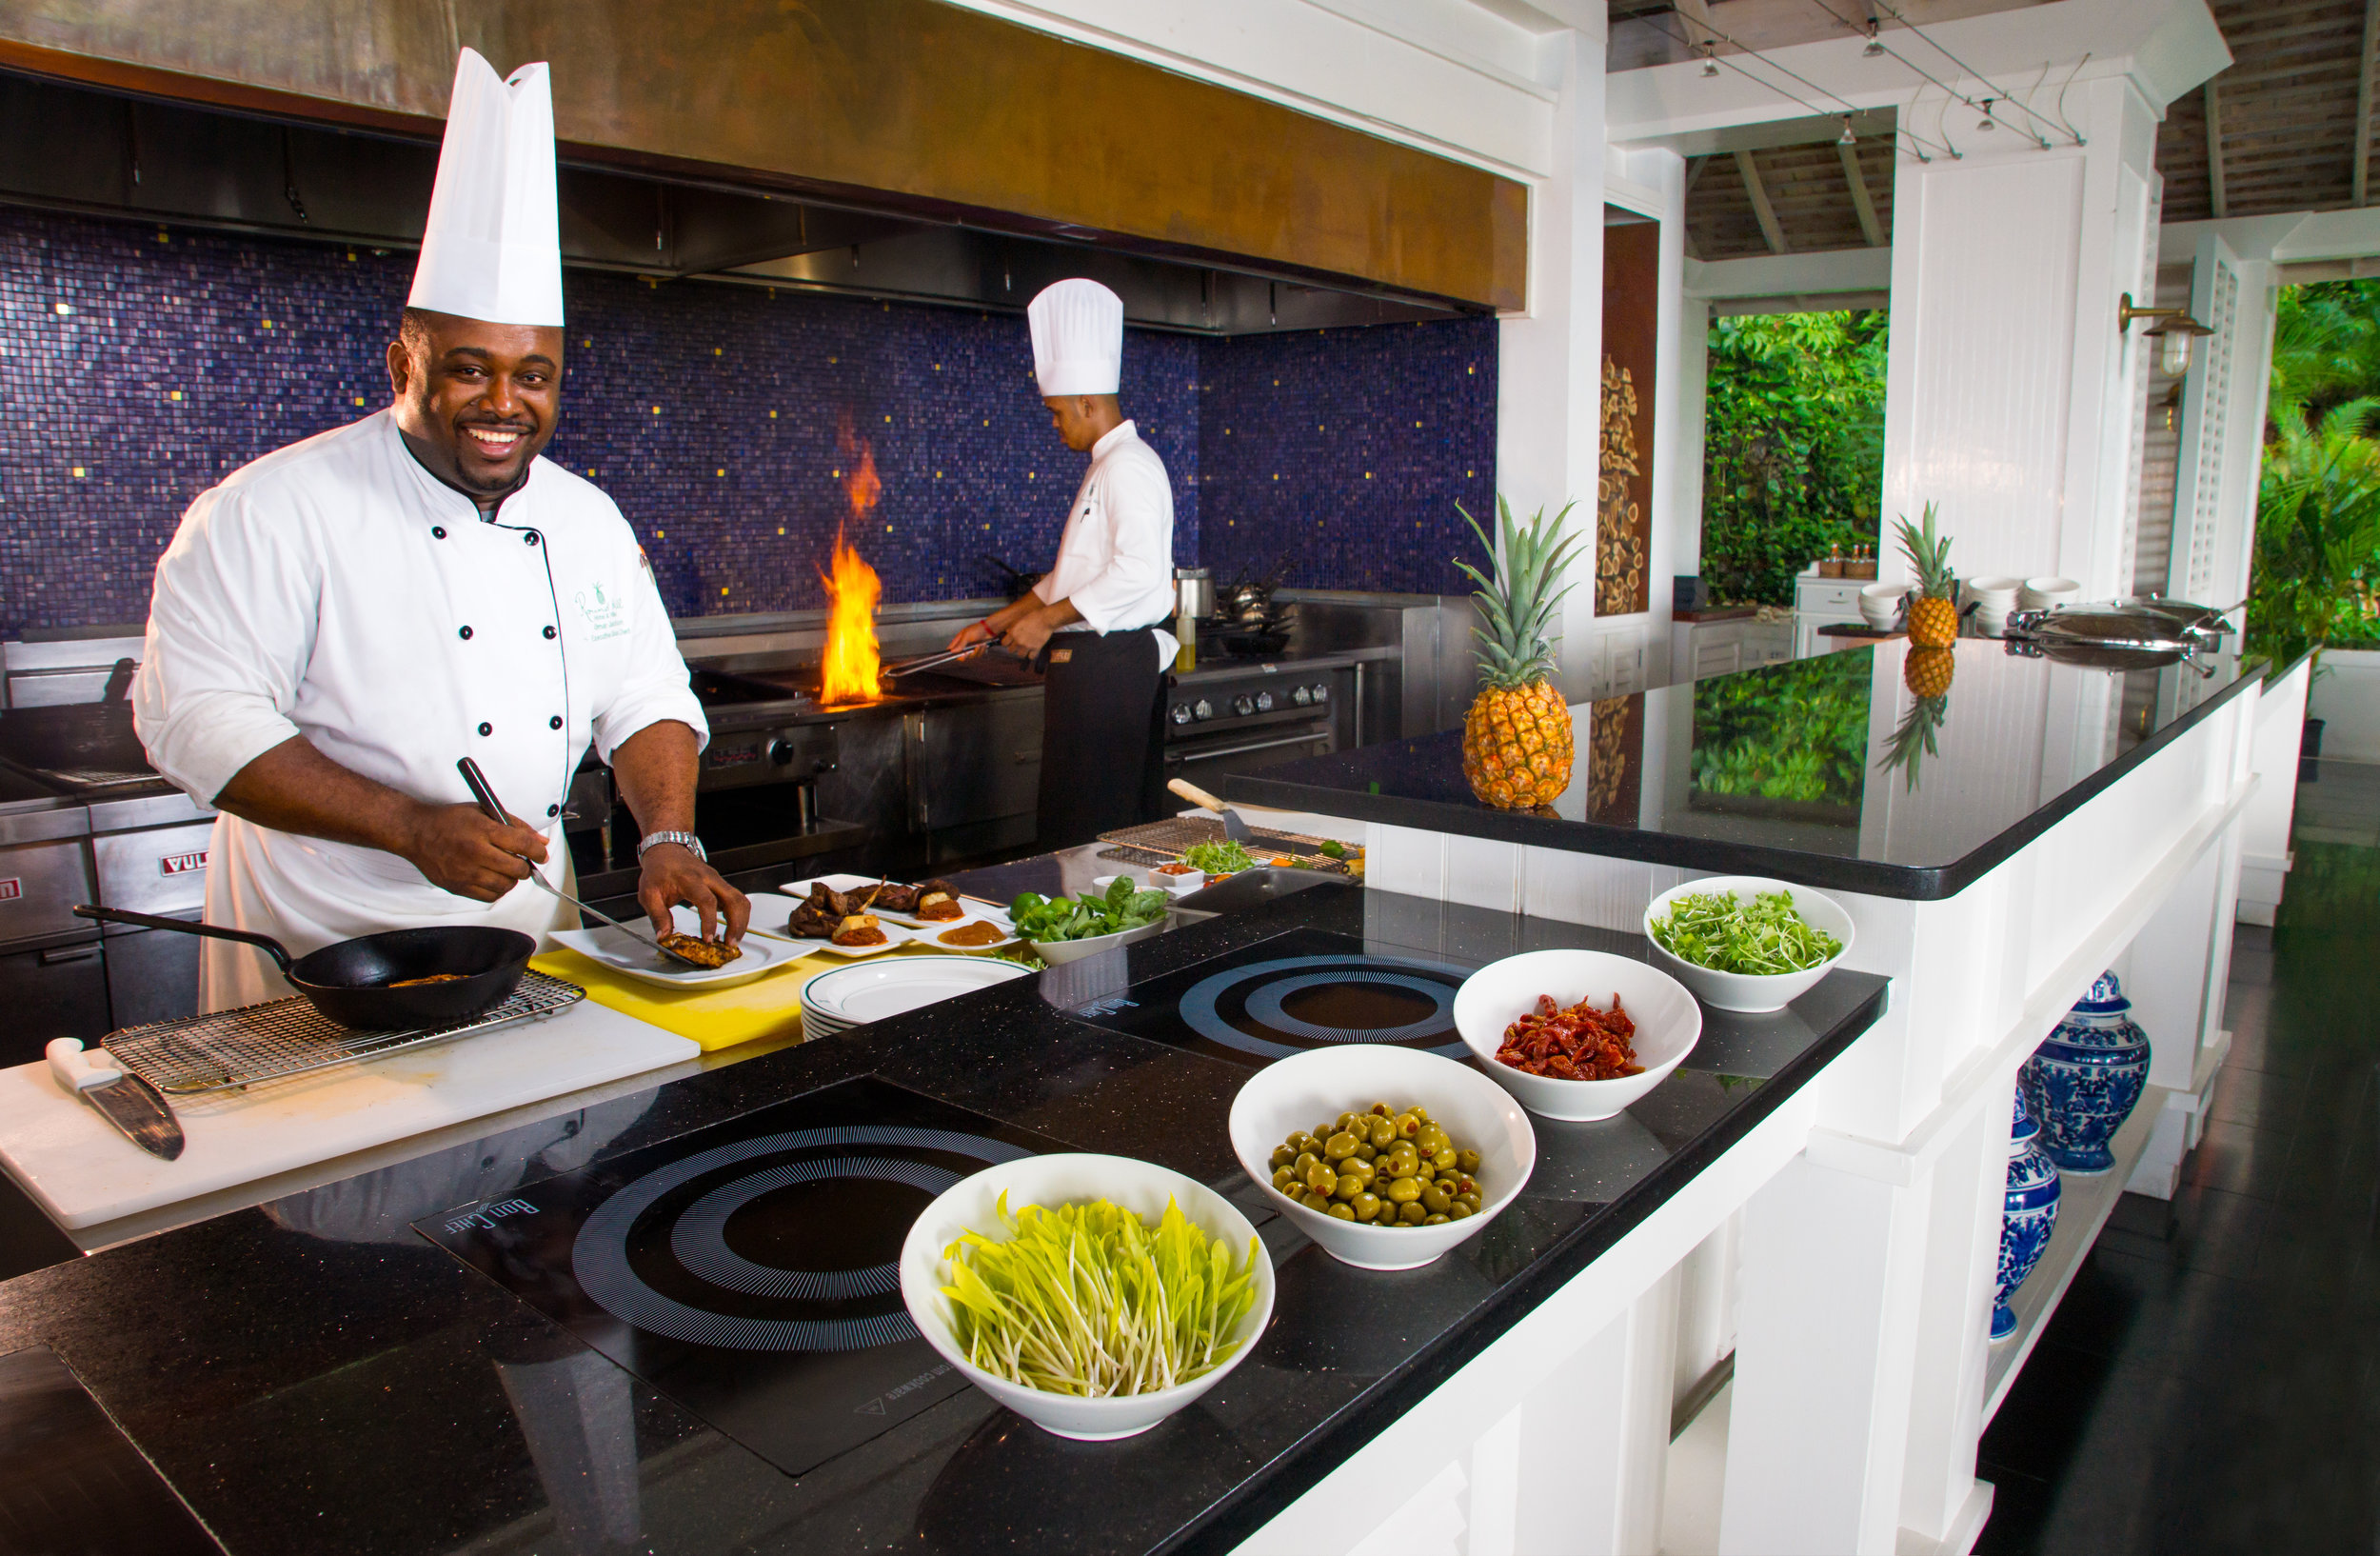 downloads_images_H - Culinary_The Grill Kitchen.jpg